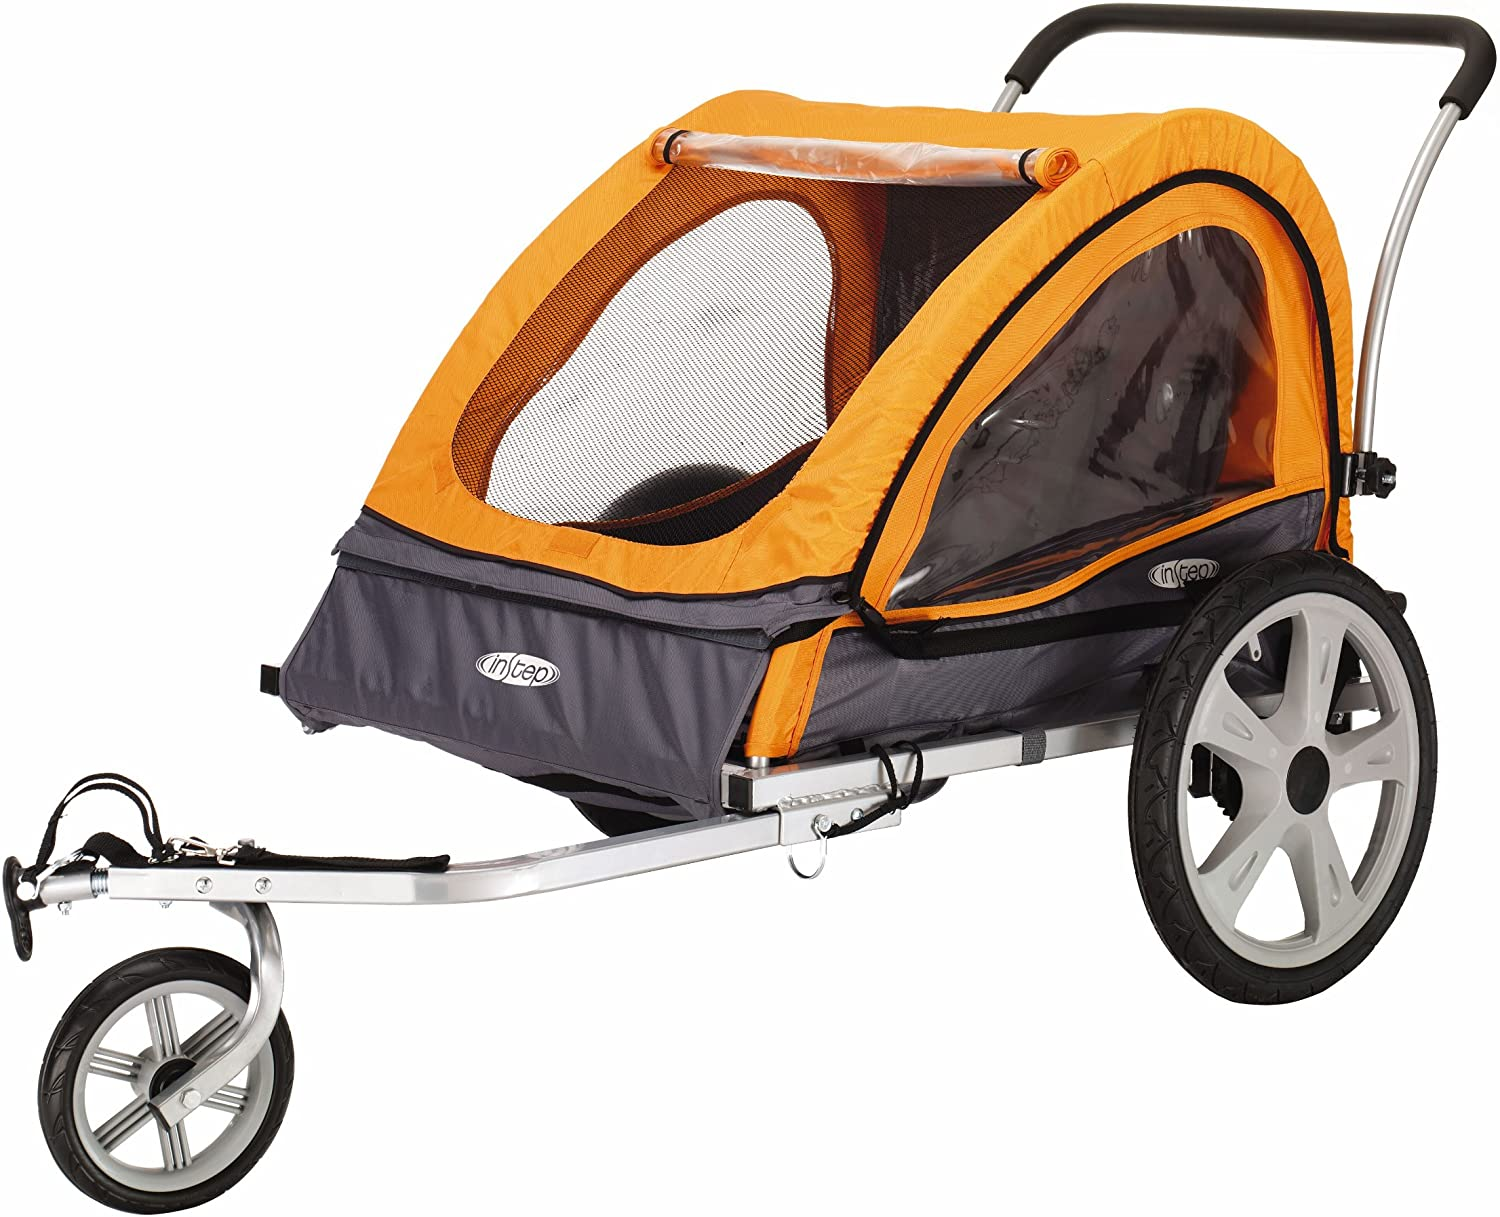 Instep Quick-N-EZ Double Tow Behind Bike Trailer for Toddlers, Kids, Converts to Stroller, Jogger, 2-in-1 Canopy, Universal Bicycle Coupler, Folding Frame, Multiple Colors